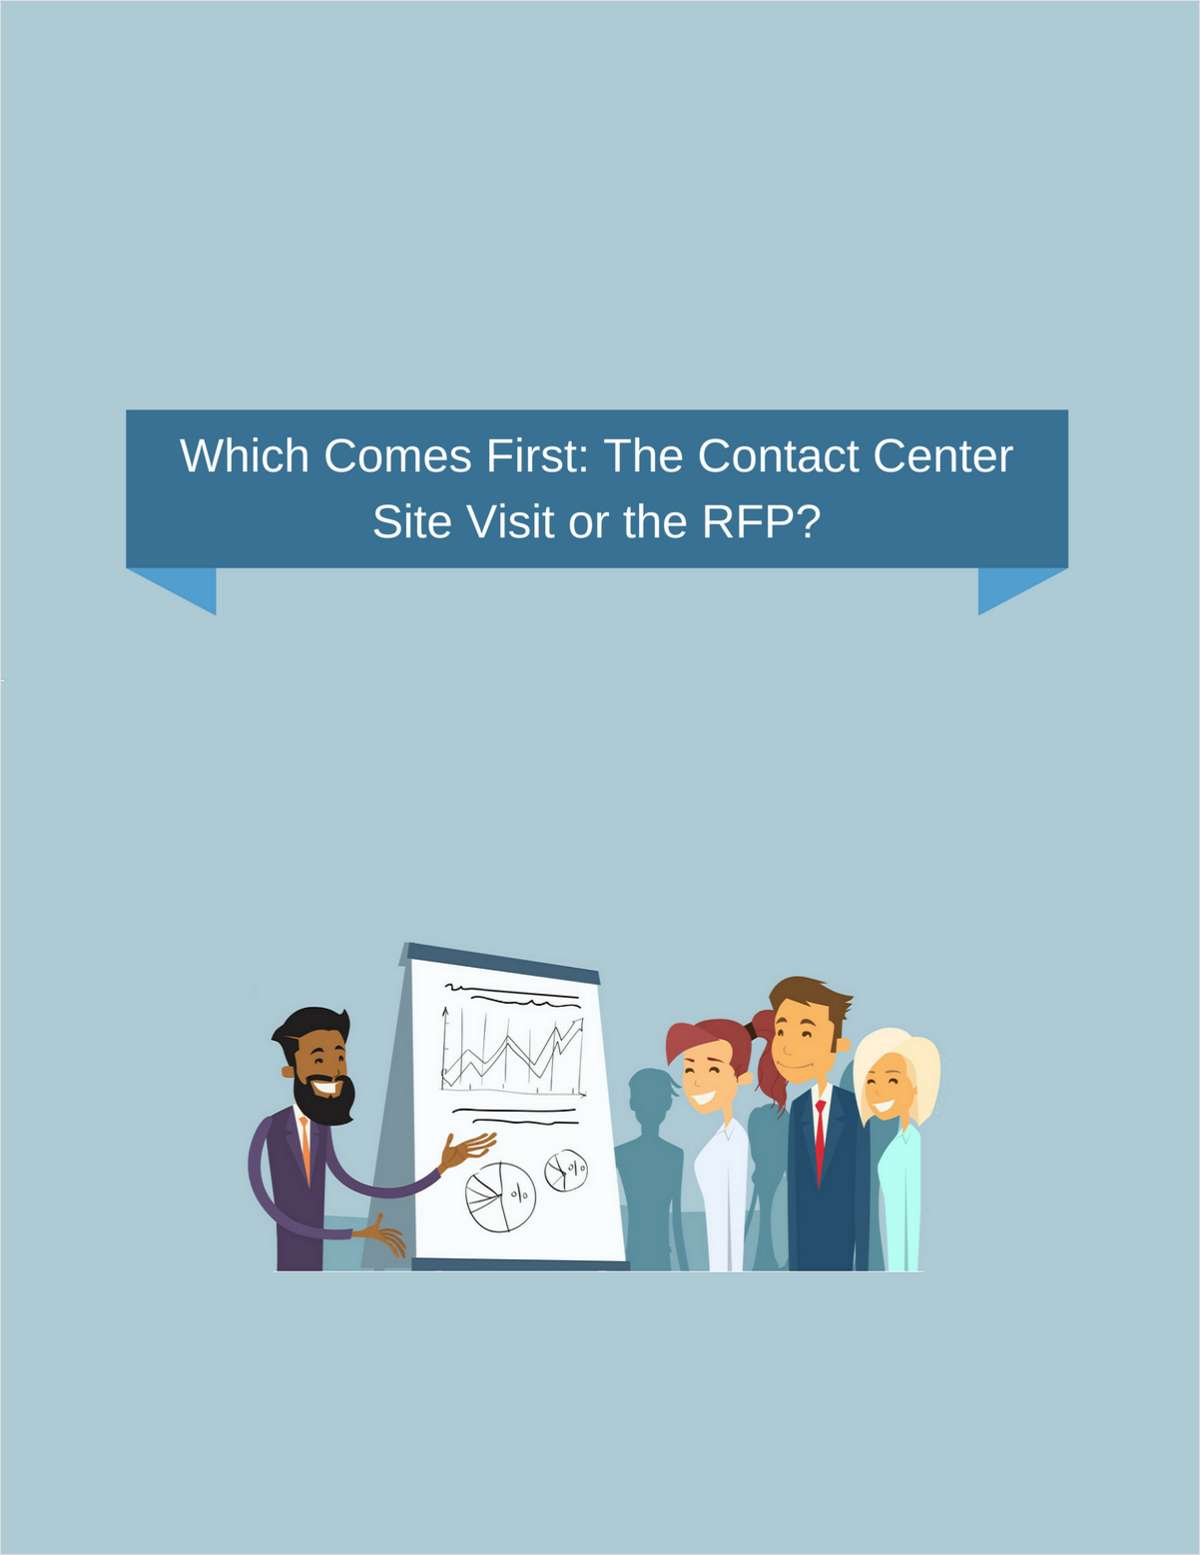 Which Comes First: The Contact Center Site Visit or the RFP?